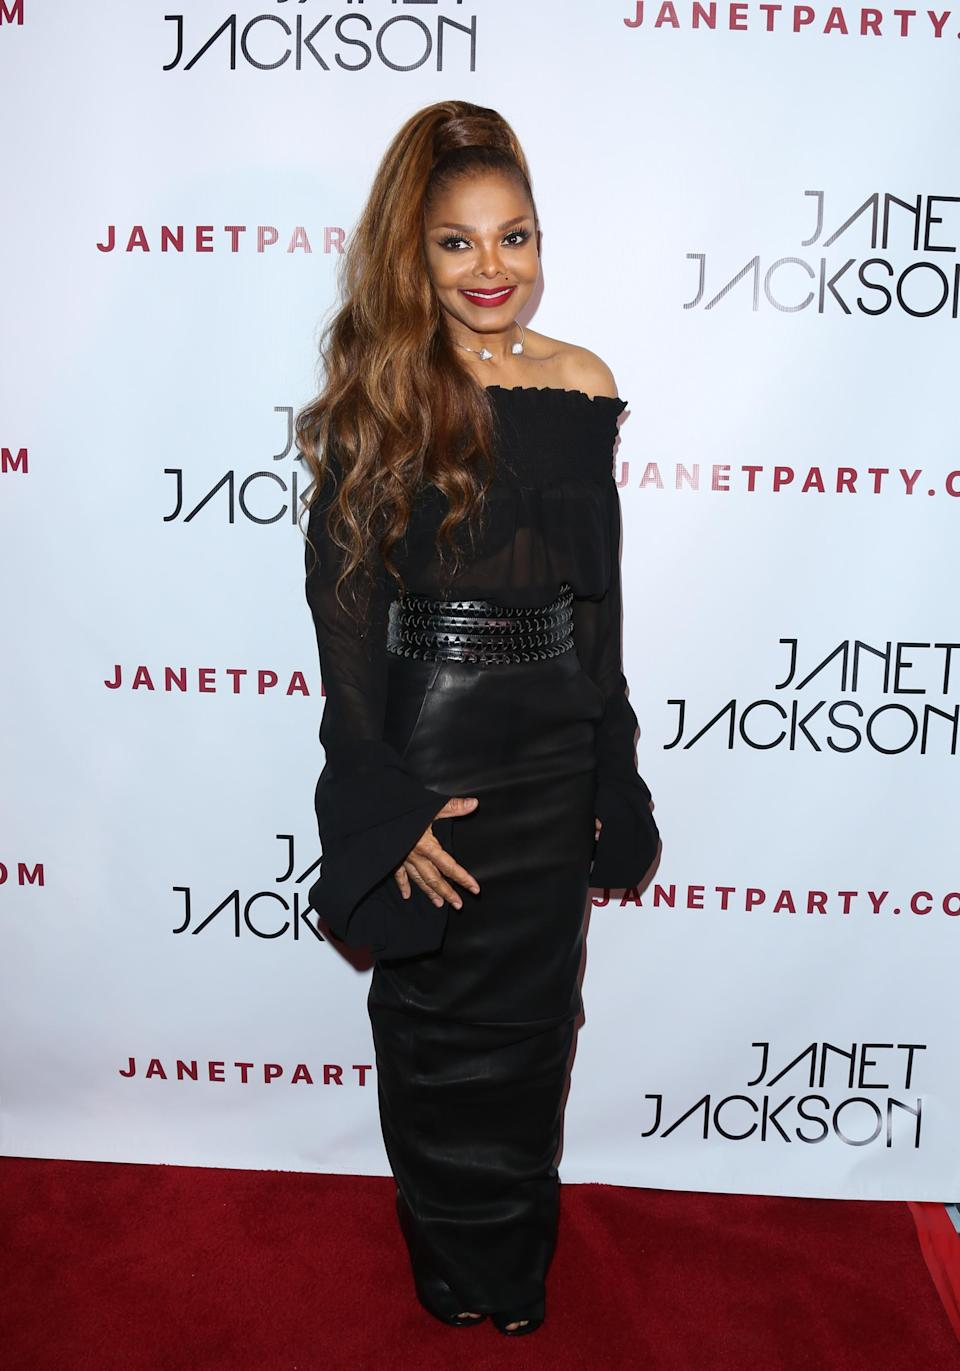 """<p>It must have felt good to Ms. Jackson (you know, if you're nasty) to take a breather at the afterparty for her concert at the iconic Hollywood Bowl. The show was a special one, because many of the singer's former backup dancers, <a rel=""""nofollow"""" href=""""https://www.yahoo.com/entertainment/janet-jackson-reunites-former-backup-123606884.html"""" data-ylk=""""slk:including Jenna Dewan Tatum;outcm:mb_qualified_link;_E:mb_qualified_link;ct:story;"""" class=""""link rapid-noclick-resp yahoo-link"""">including Jenna Dewan Tatum</a>, joined her onstage for a reunion during it. (Photo: Paul Archuleta/FilmMagic) </p>"""